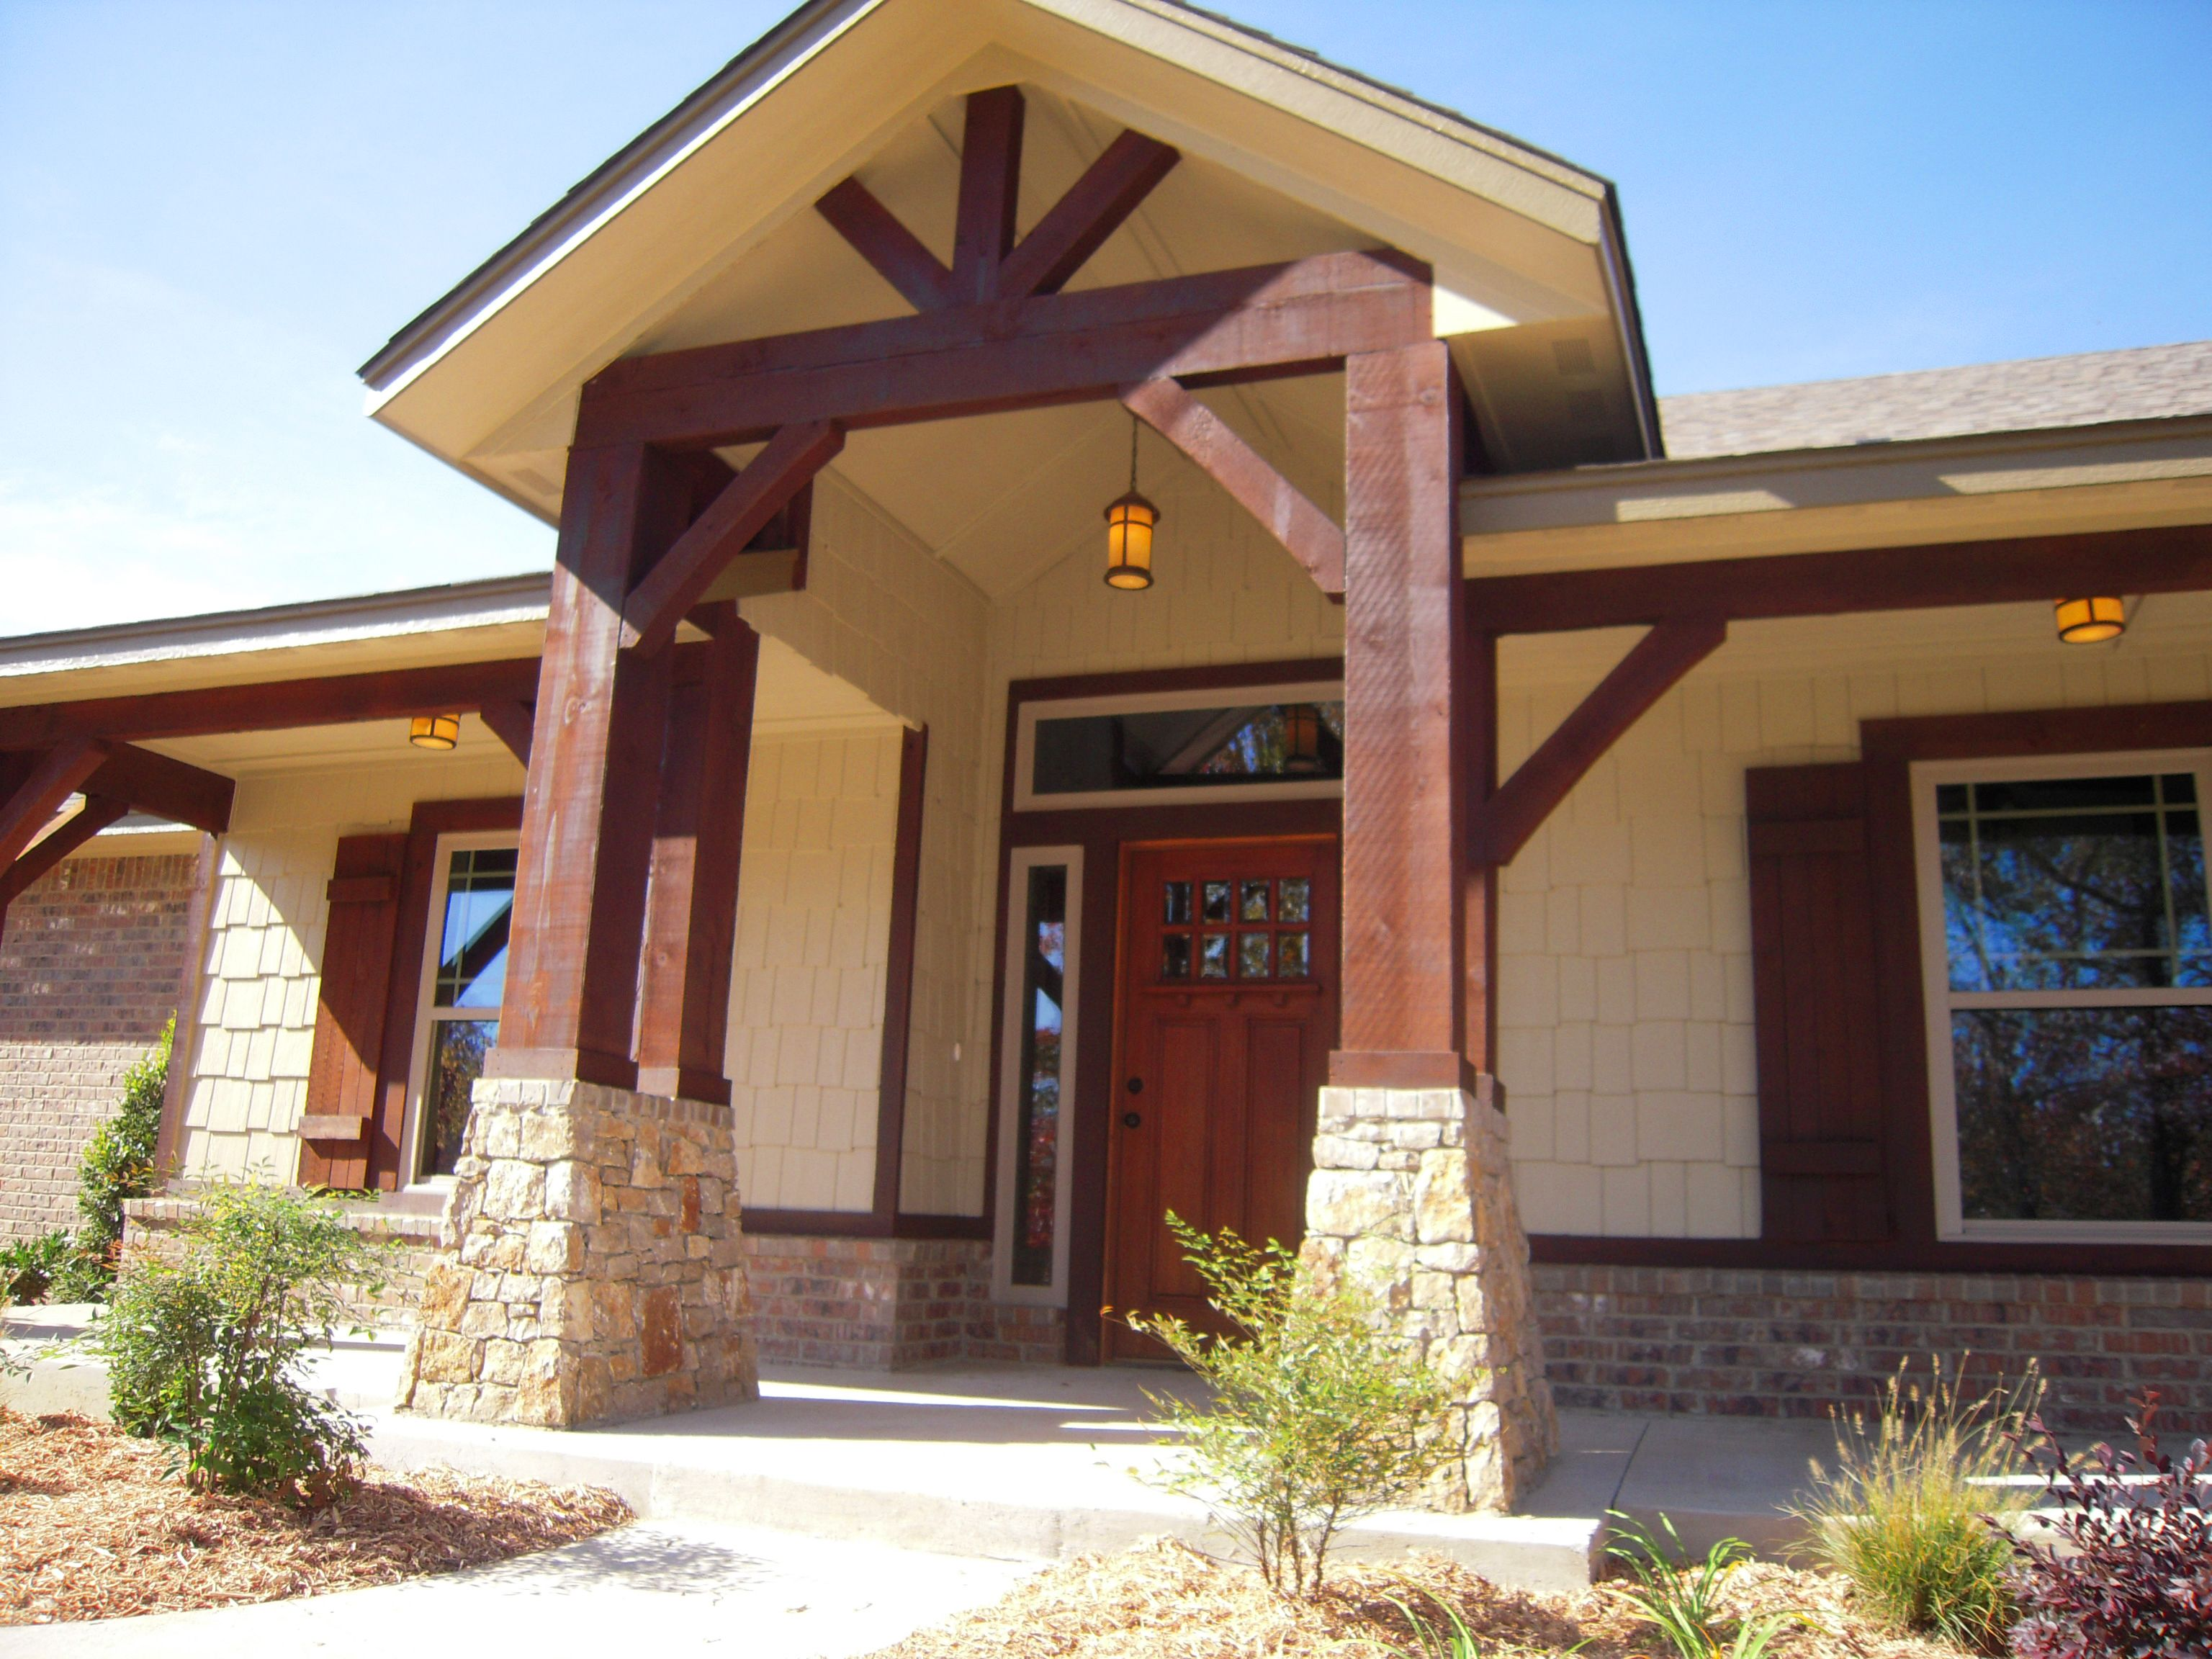 Concept builders conner ii exp tulsa home builders for Conner home